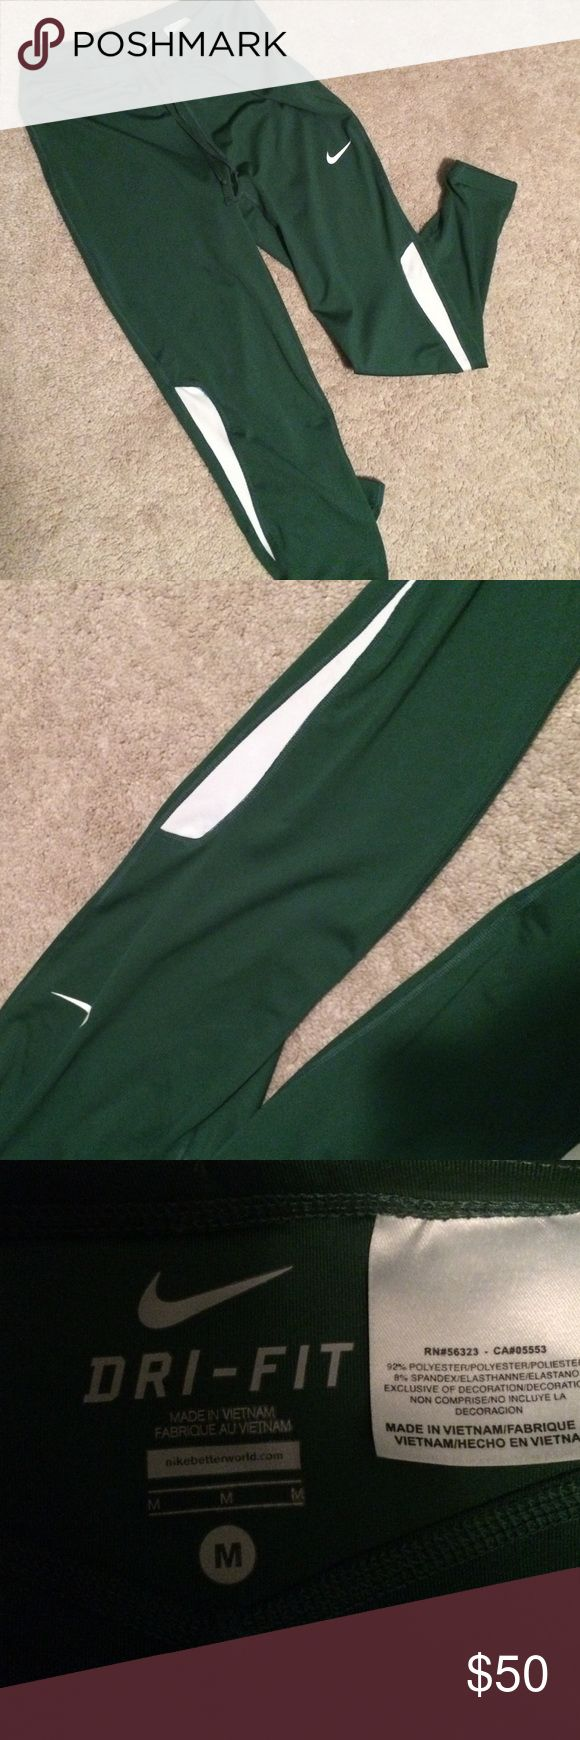 Bright Green Nike Leggings Bright green Nike jogging leggings! Slightly been worn, tight at the ankle and great for all types of workouts! Nike Pants Leggings